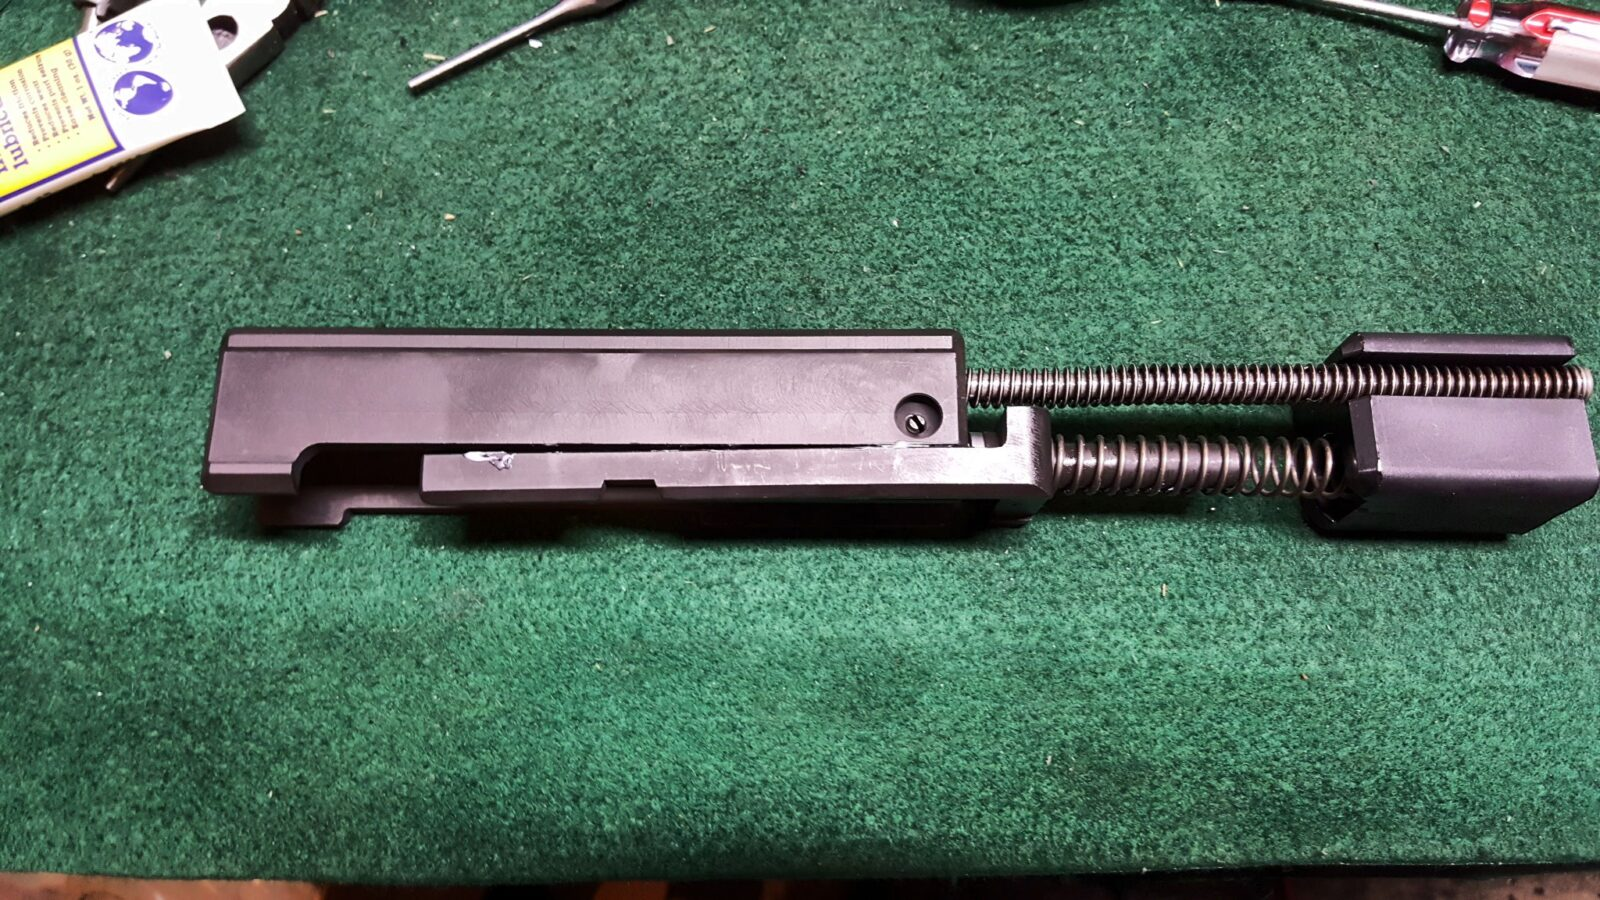 Uzi Part 7 of 7: The Bolt and Final Assembly of the Semi